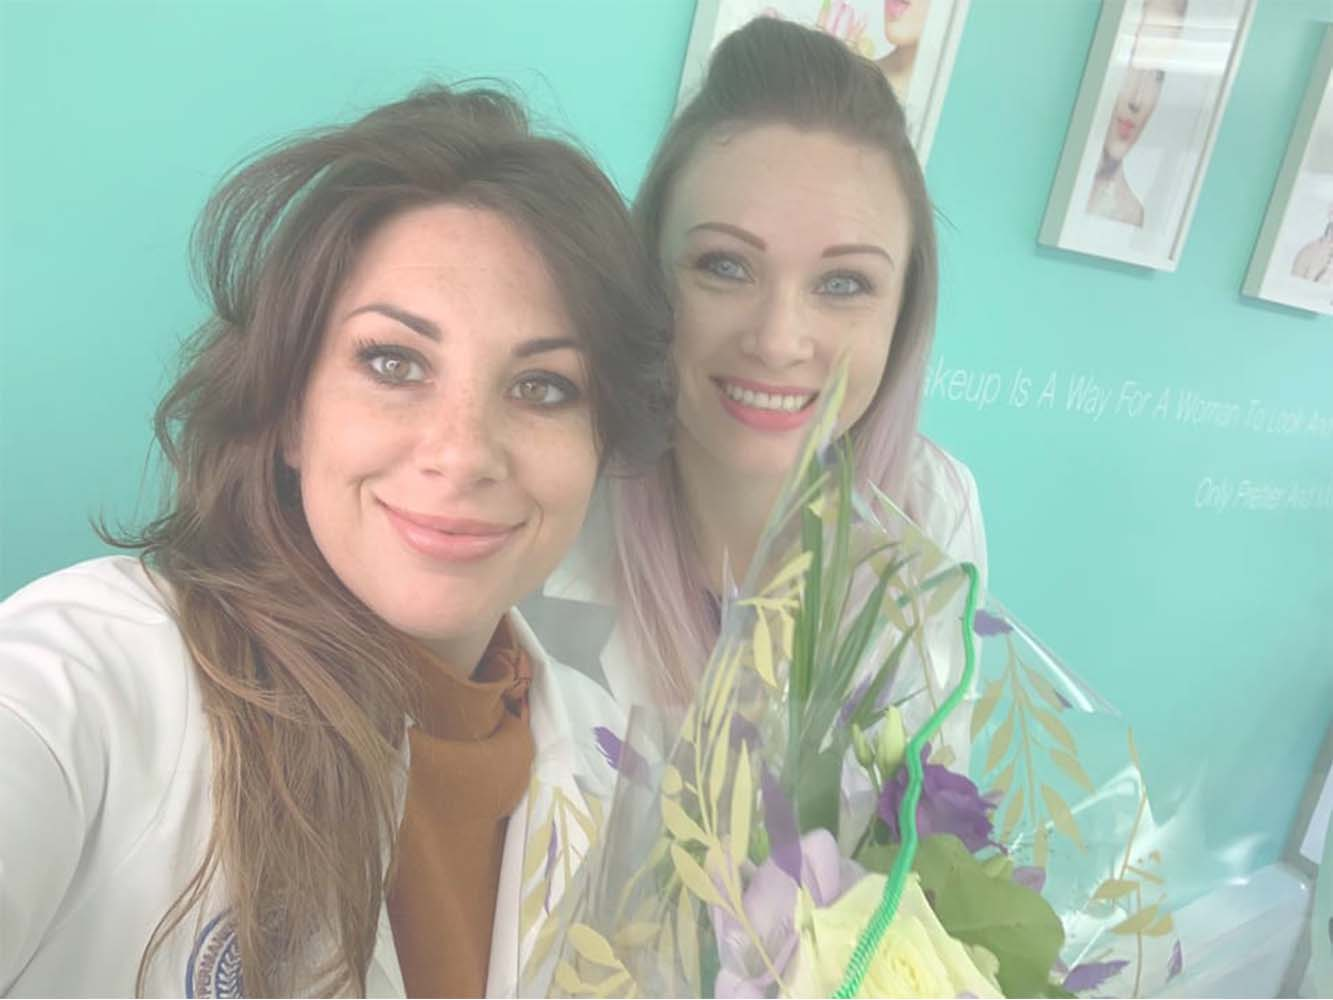 Katy with Permanent Makeup Training Student Vanessa